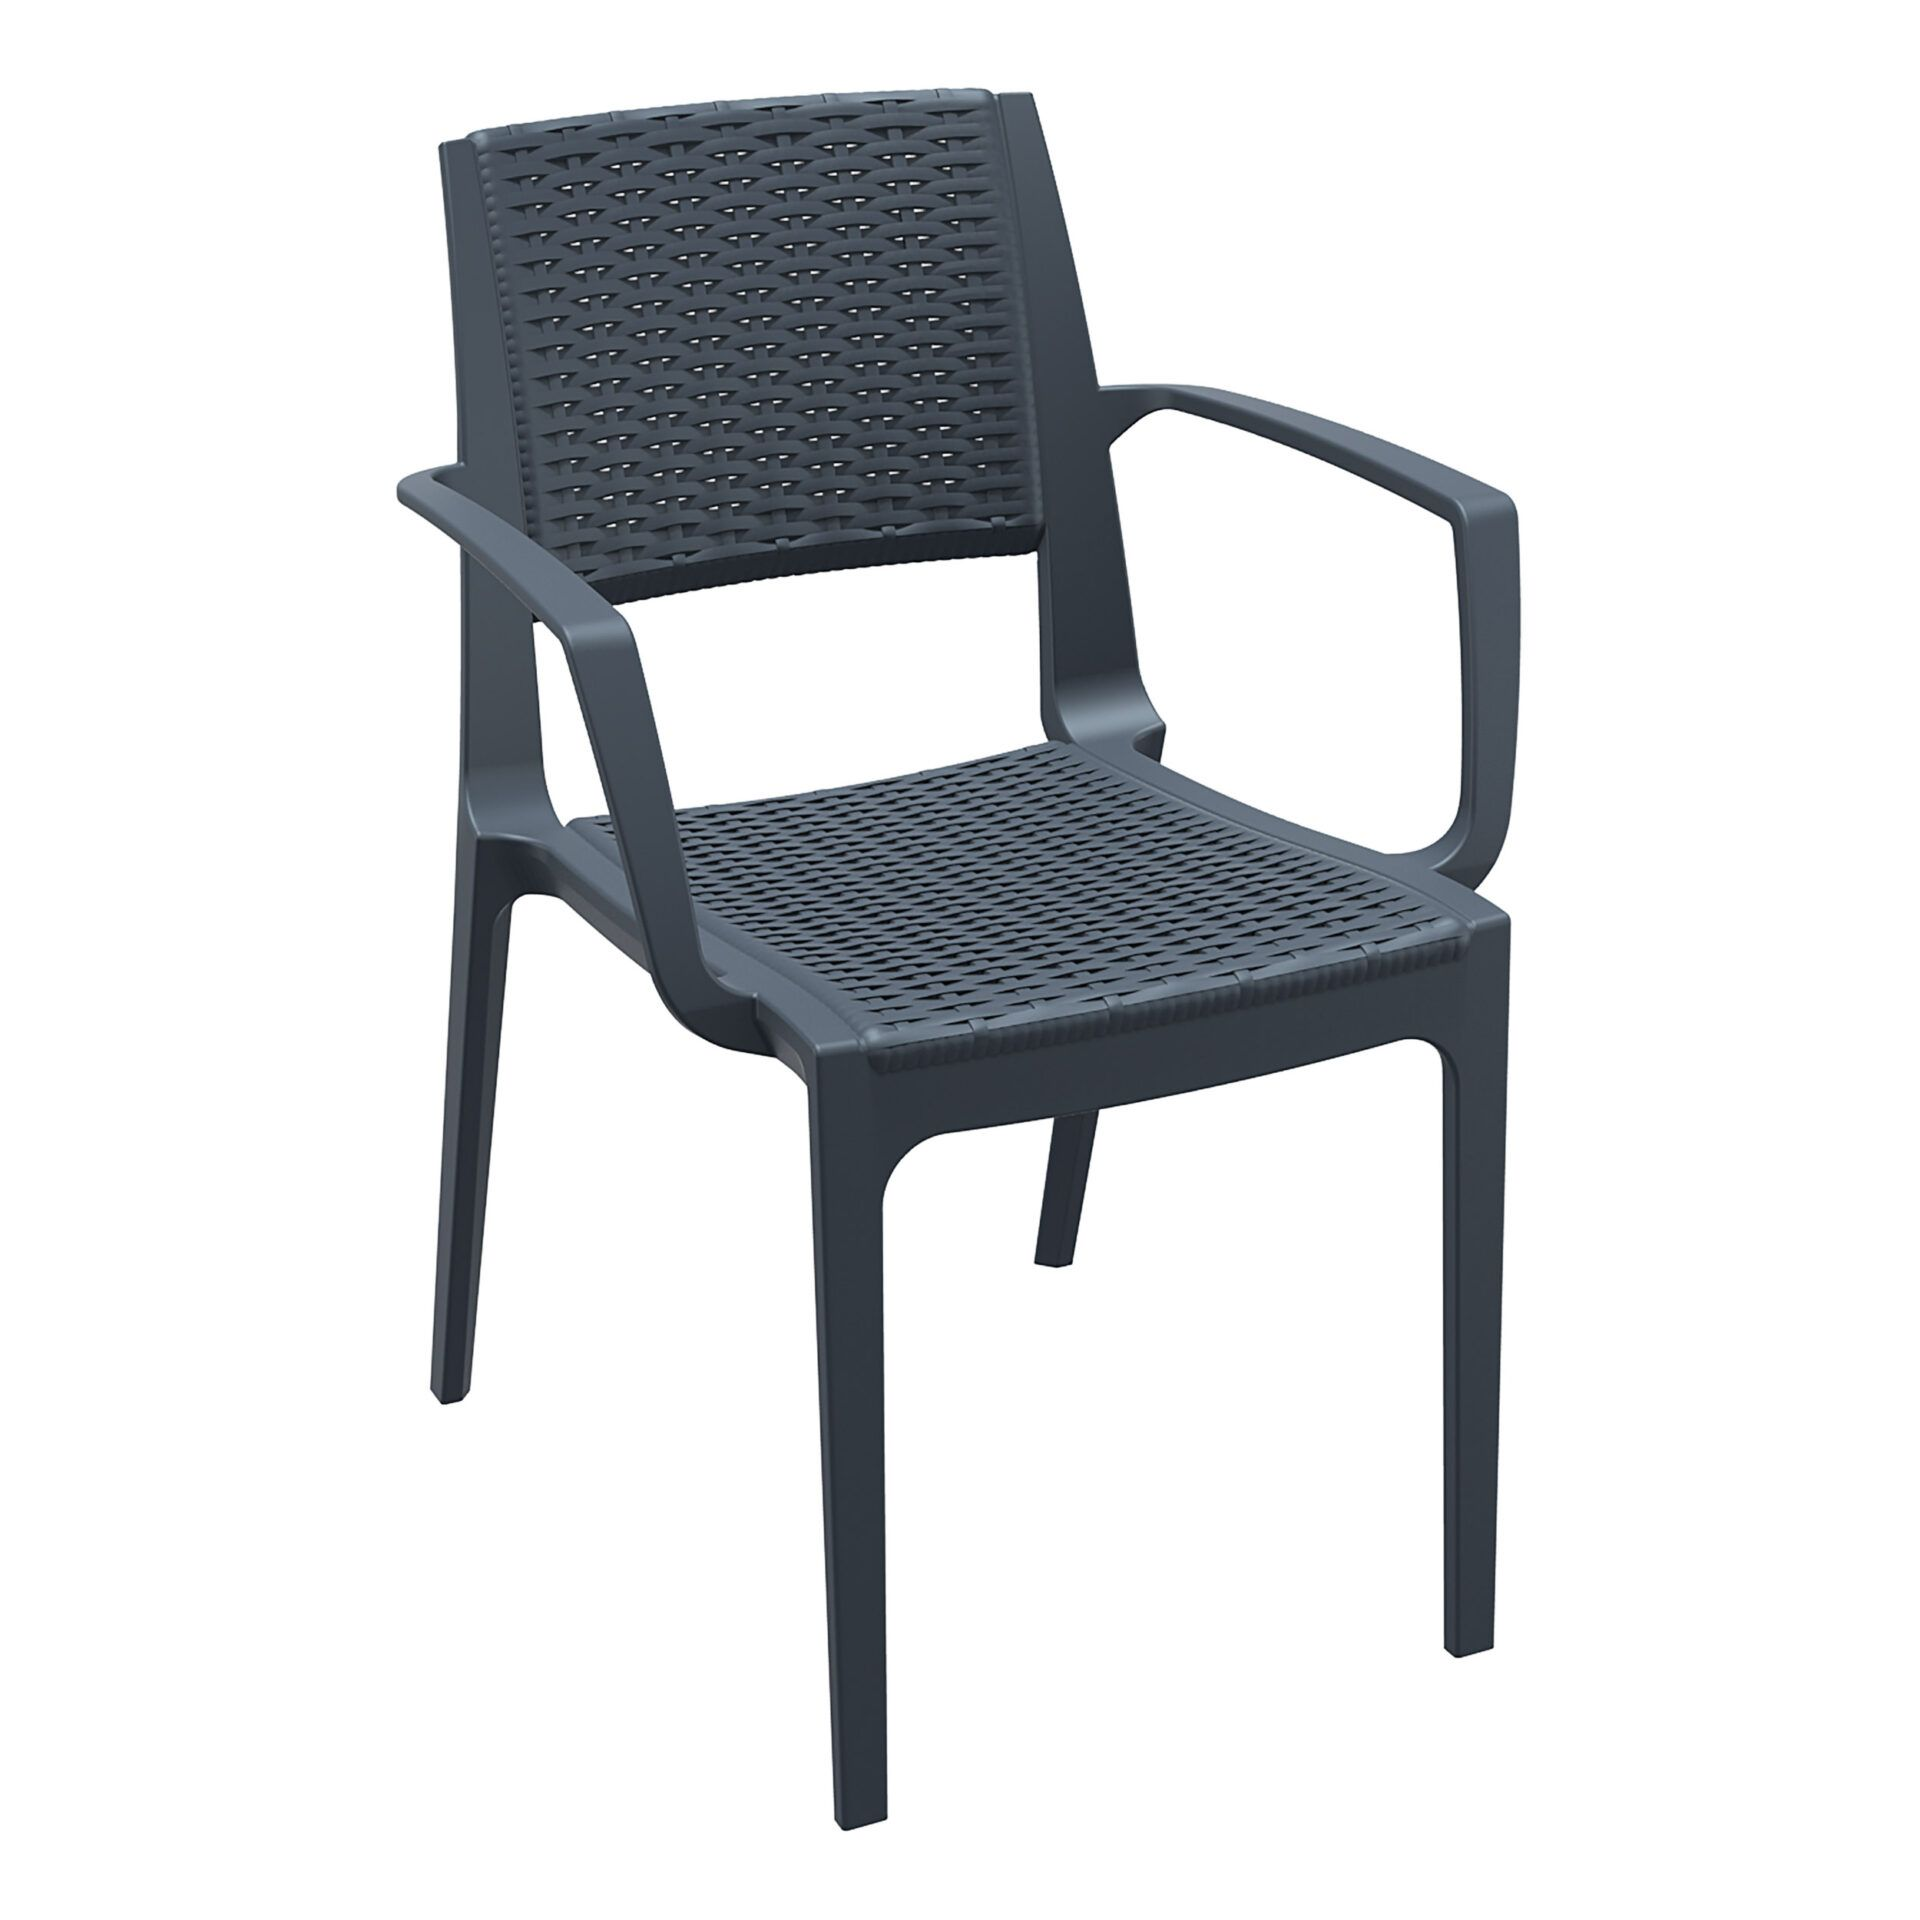 rattan outdoor seating capri chair darkgrey front side